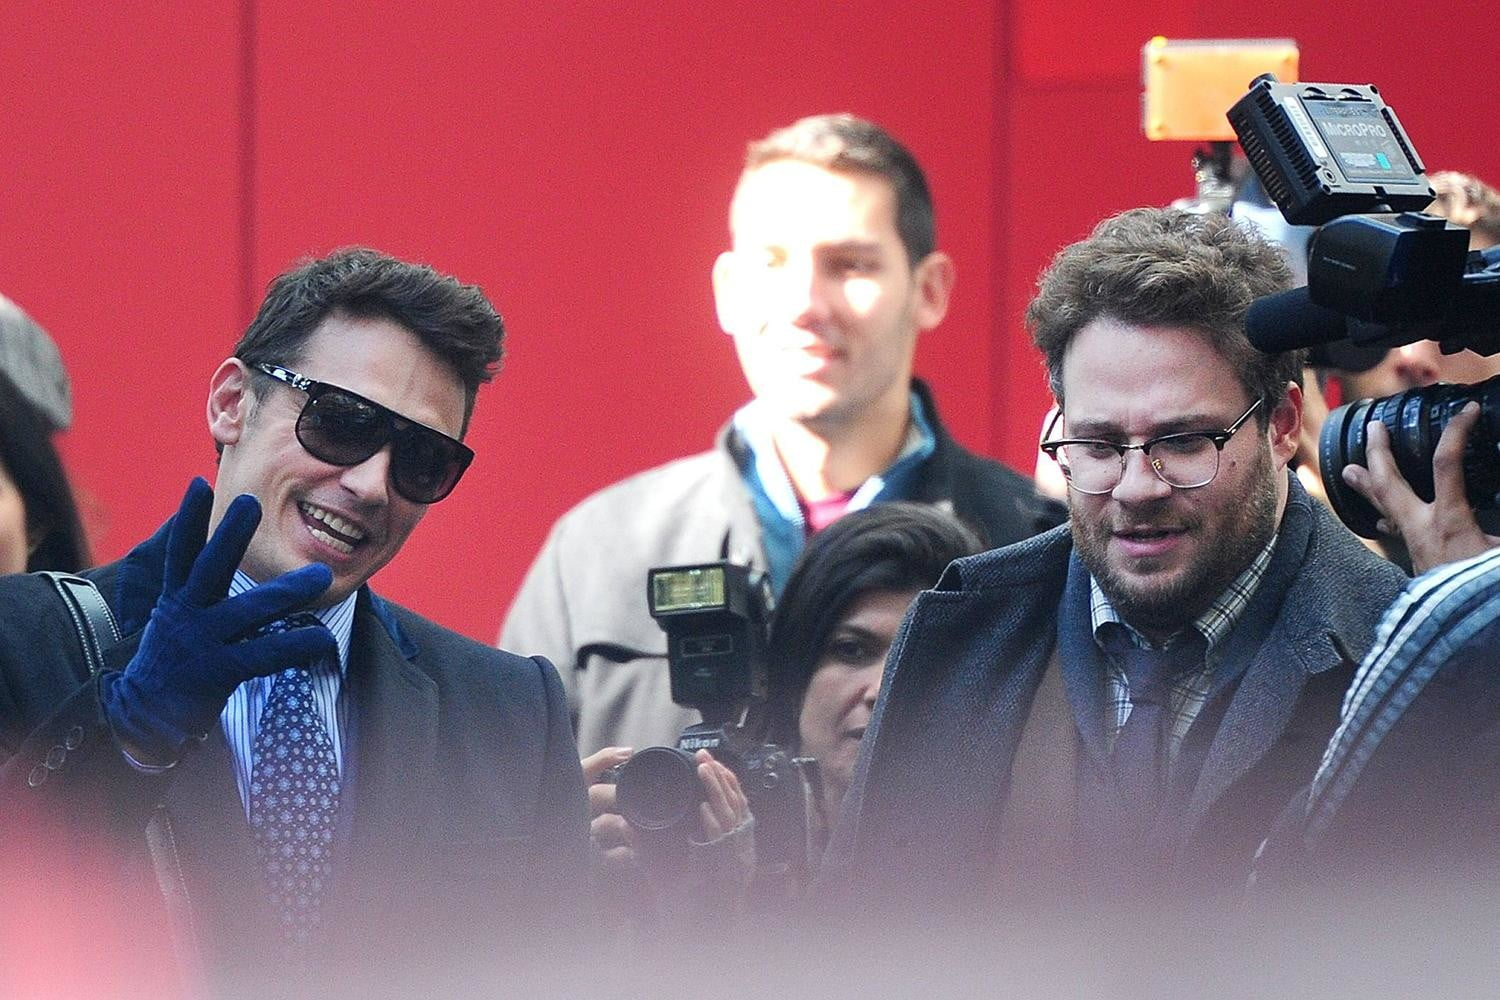 The Interview movie